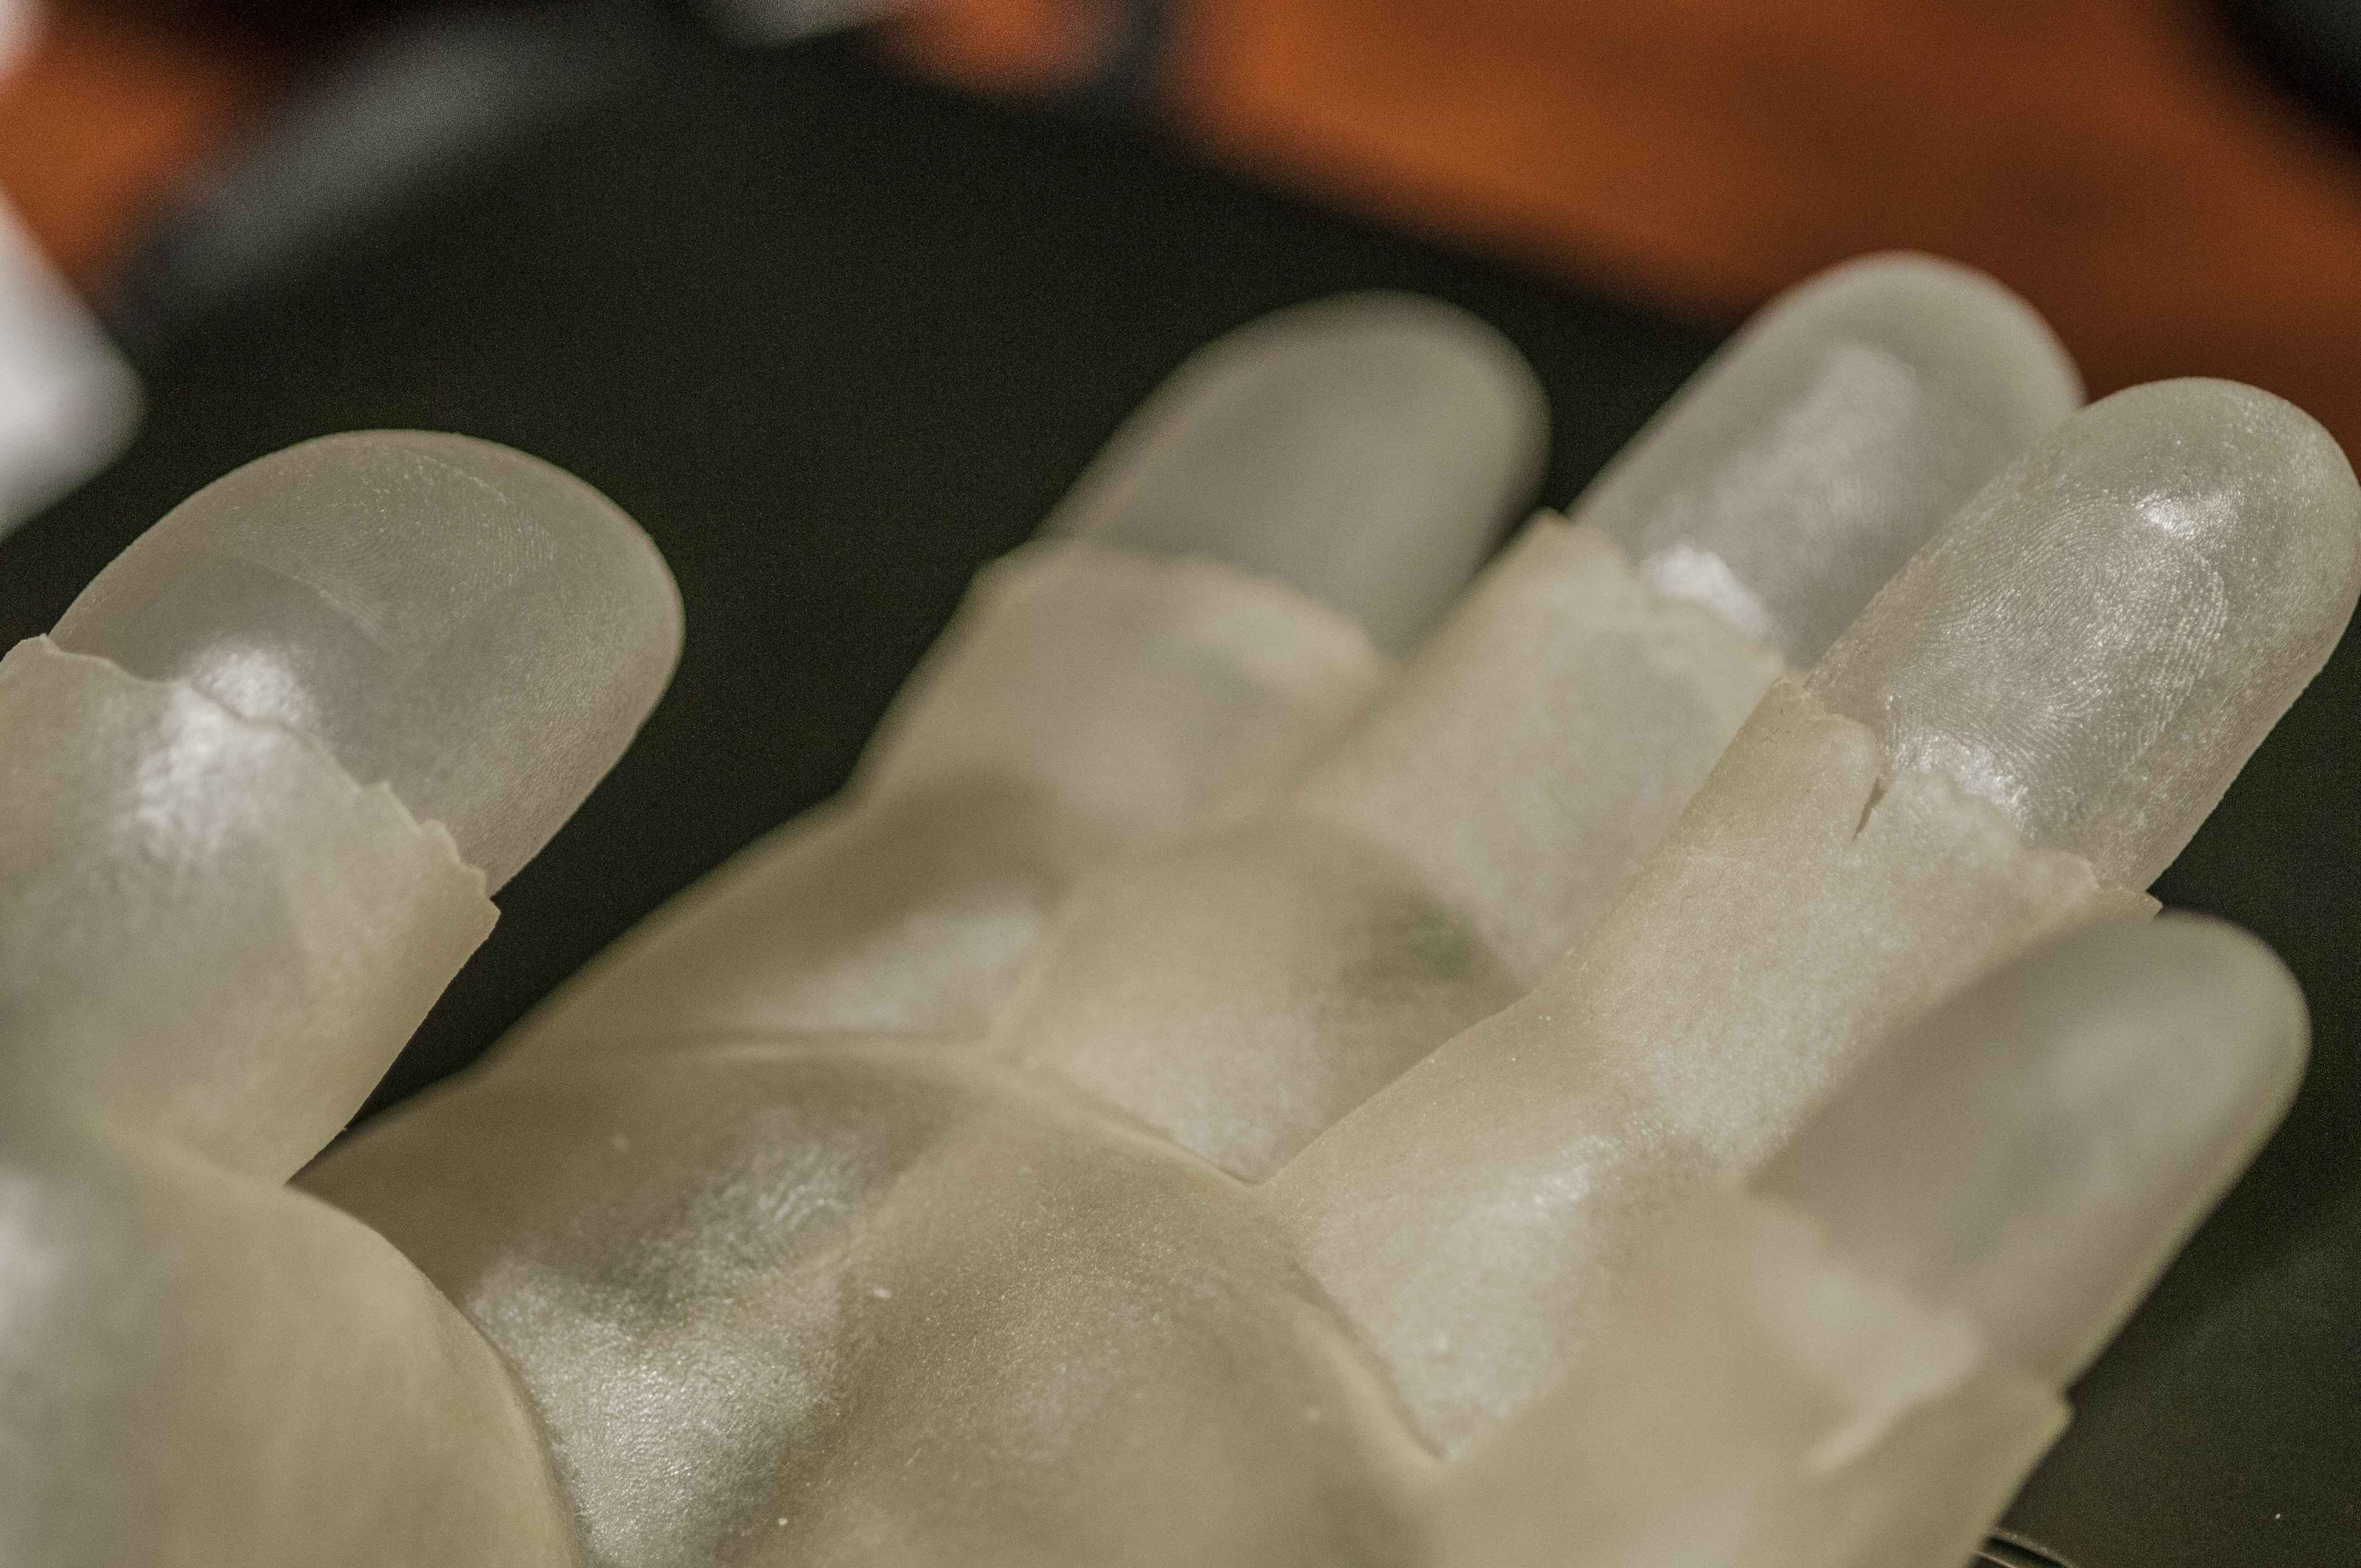 Msu Researchers Demonstrate How A 3 D Printed Model Hand Is Used To Test